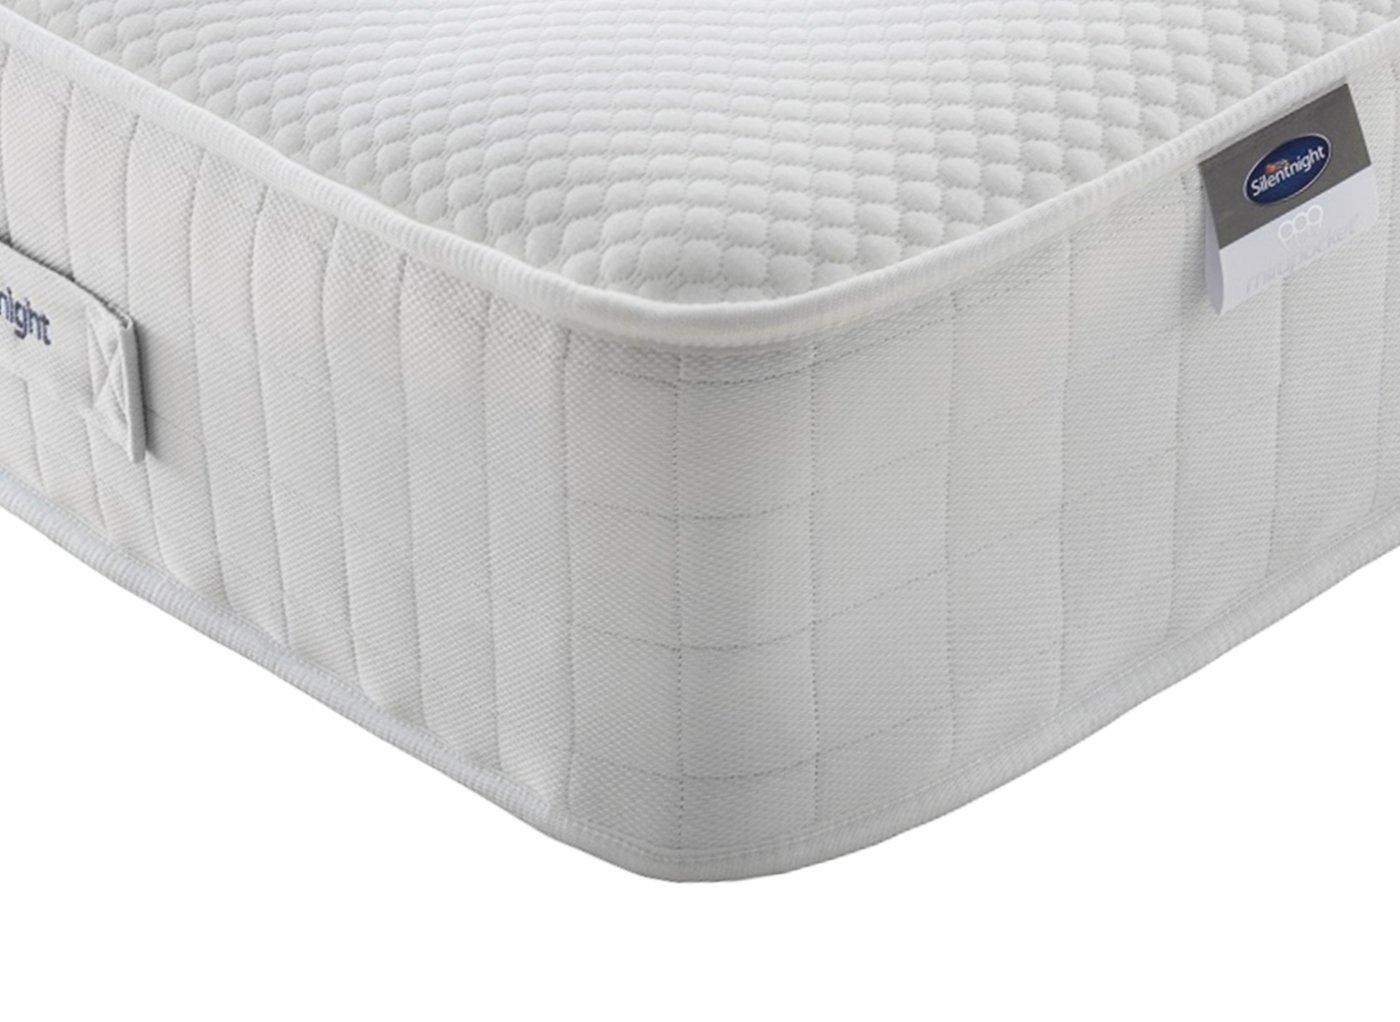 Silentnight Cromwell Mirapocket Mattress 5'0 King